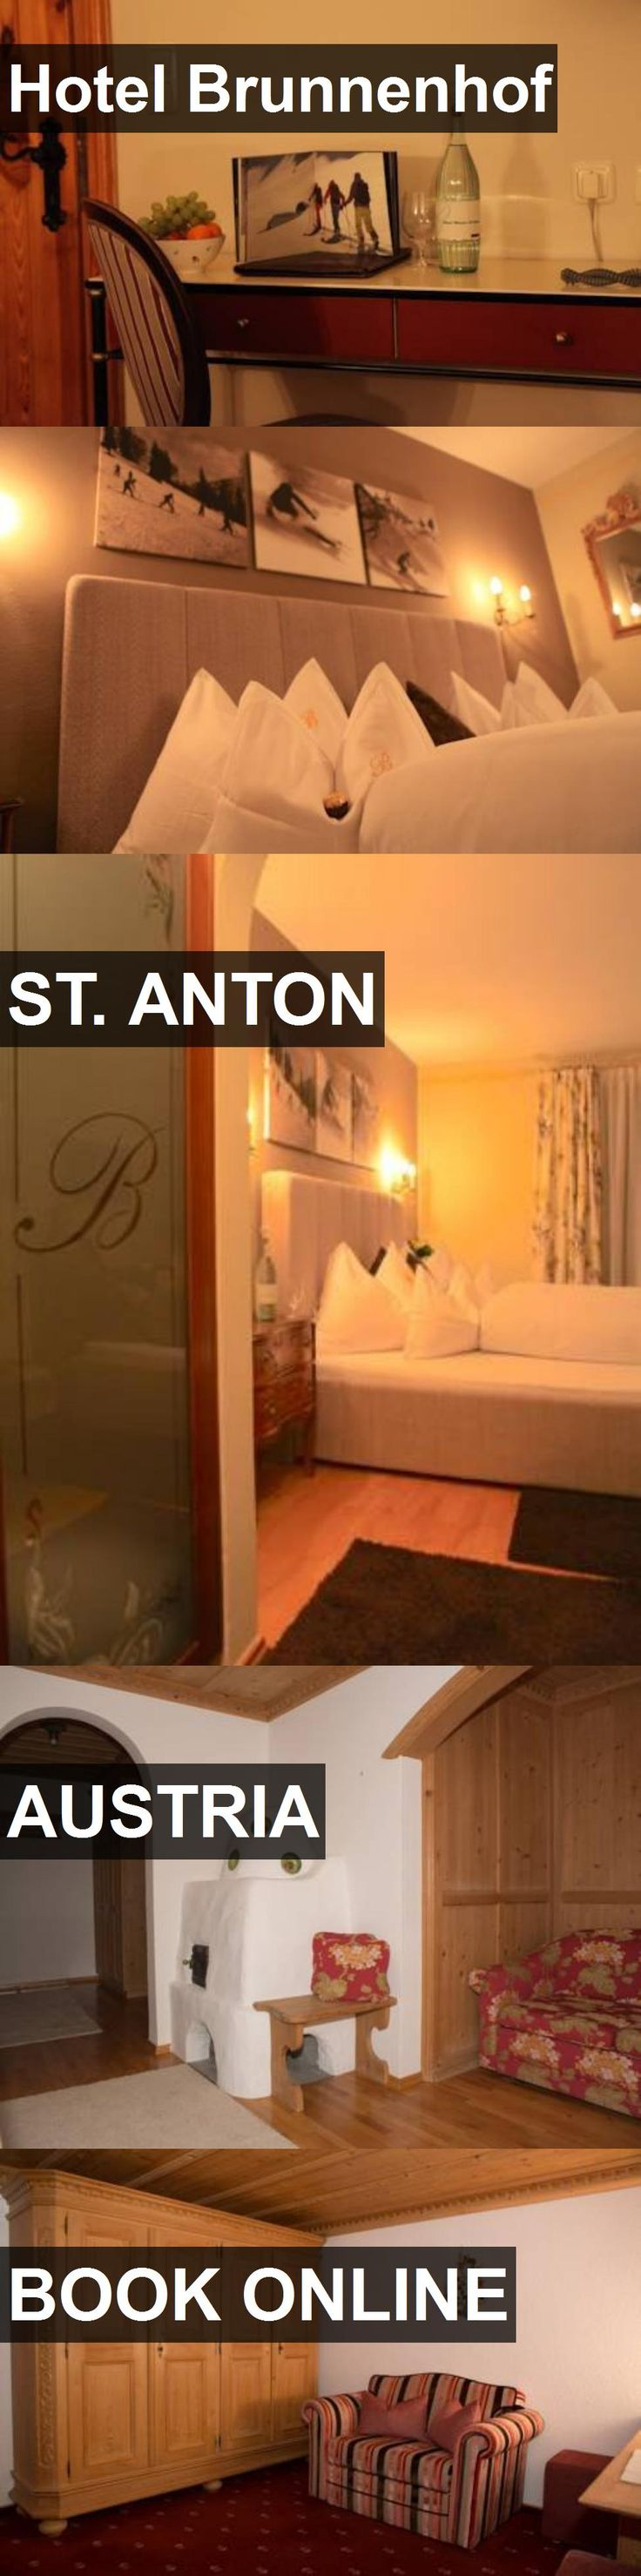 Hotel Brunnenhof in St. Anton, Austria. For more information, photos, reviews and best prices please follow the link. #Austria #St.Anton #travel #vacation #hotel